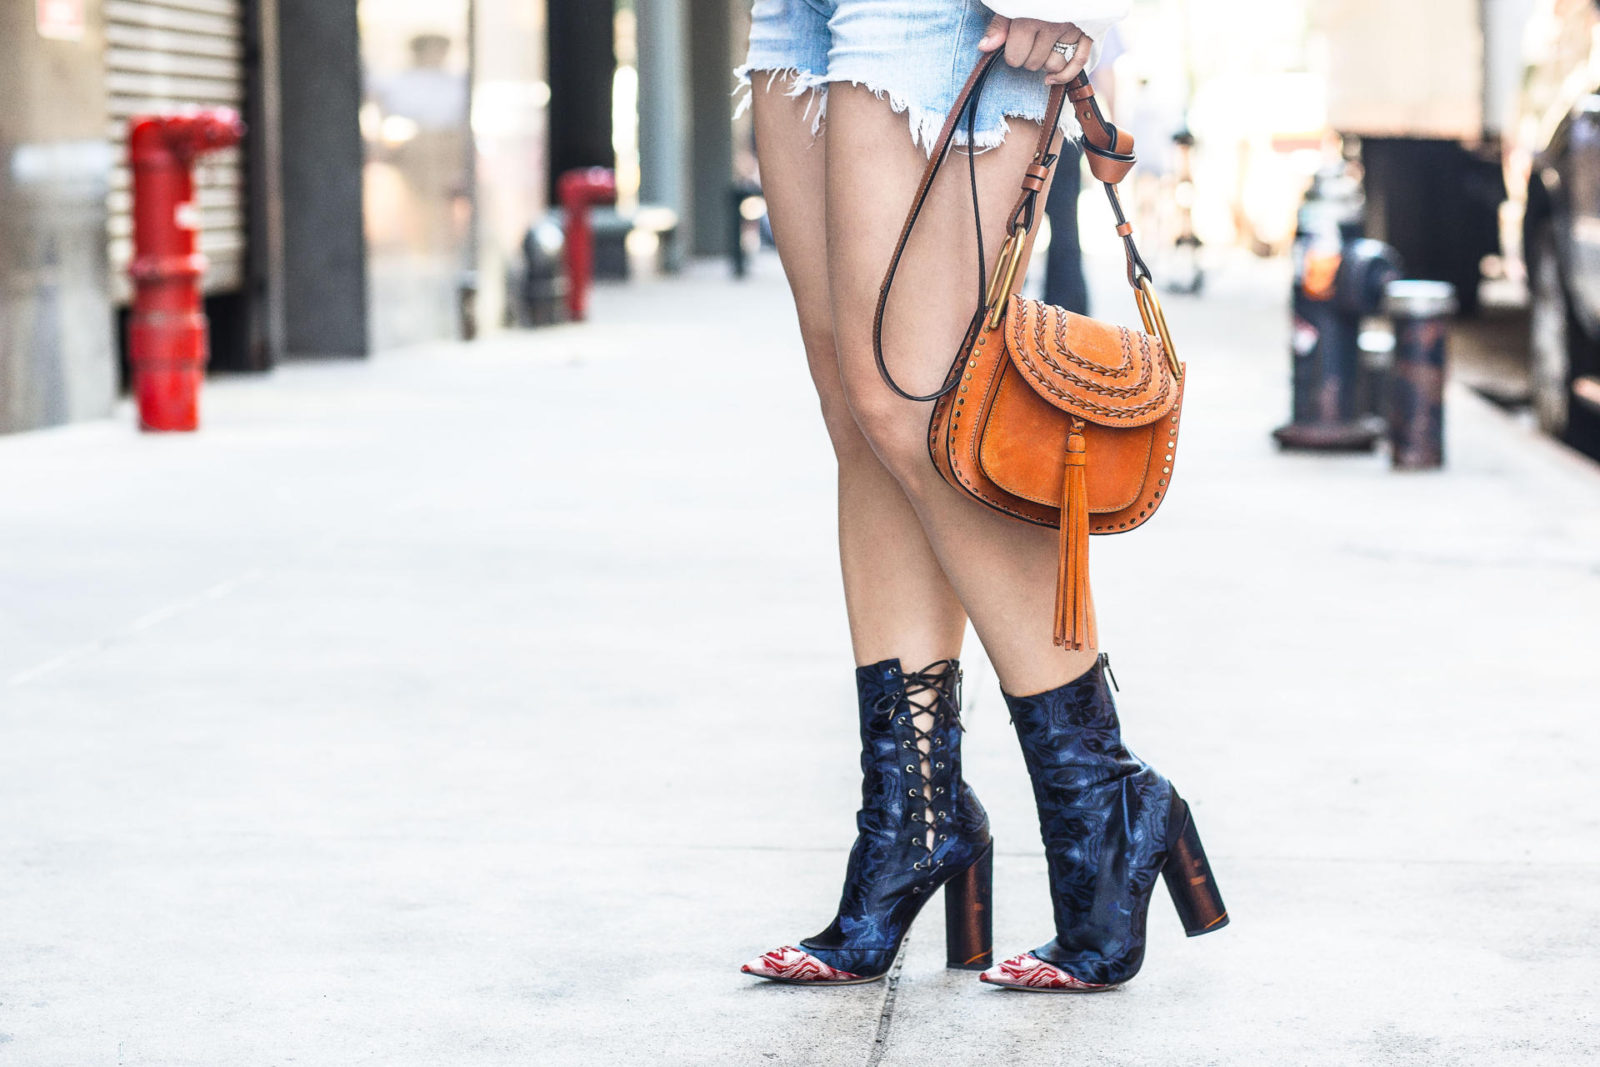 nyc-dior-boots-chloe-bag